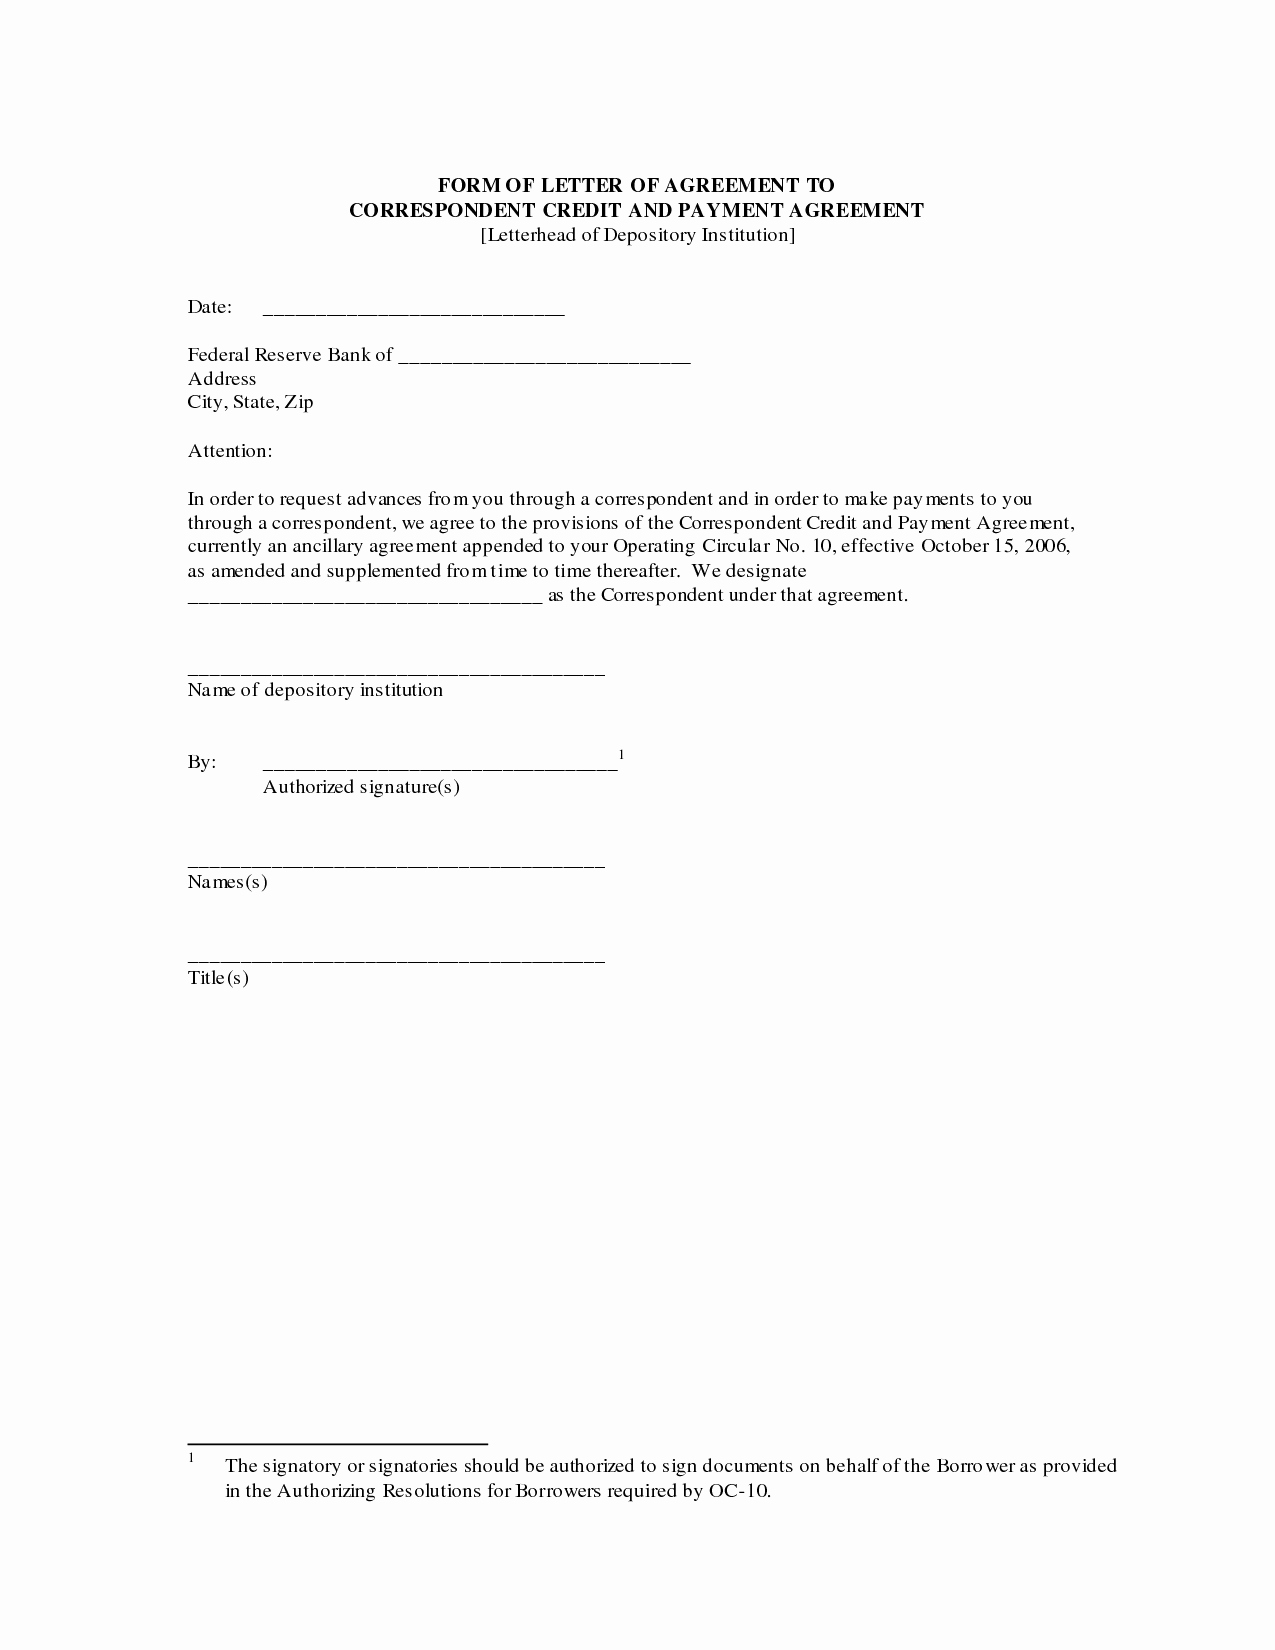 Letter Of Agreement Template Unique Payment Agreement Letter Sample Contract Template form